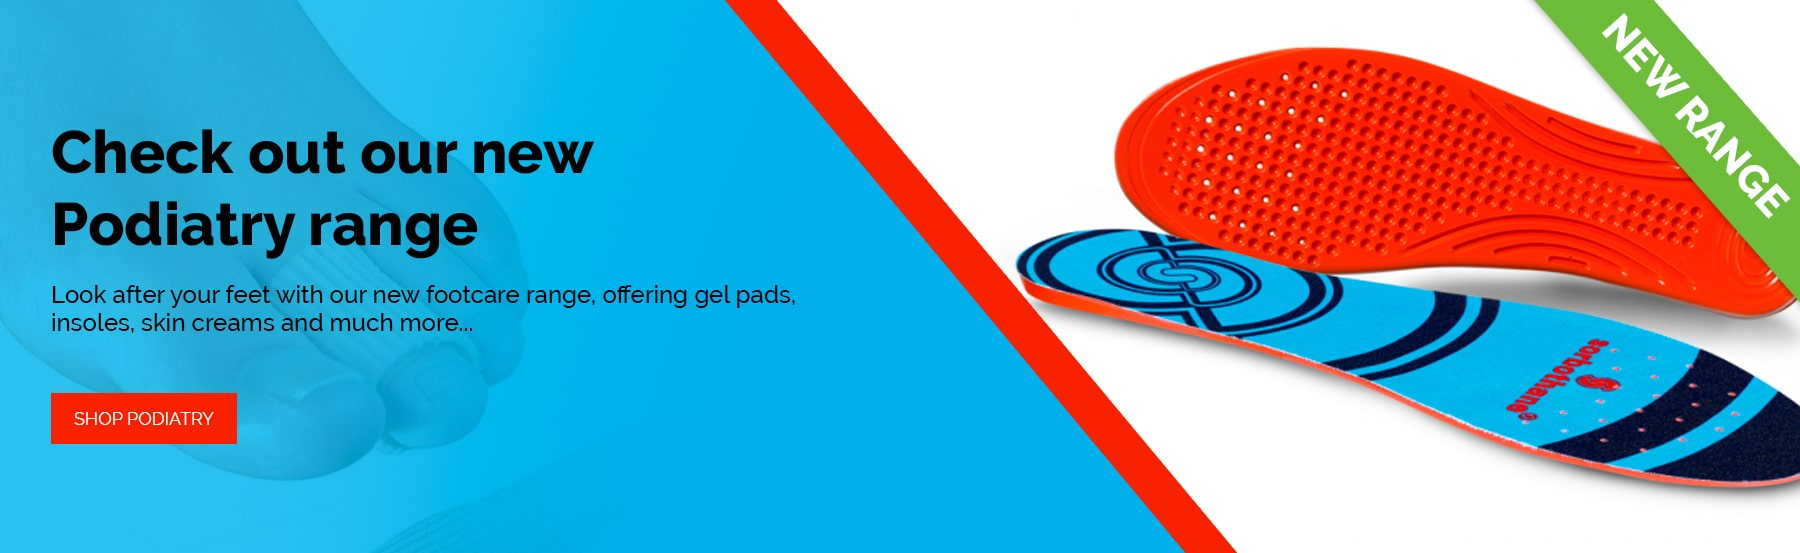 Check out our new Podiatry range